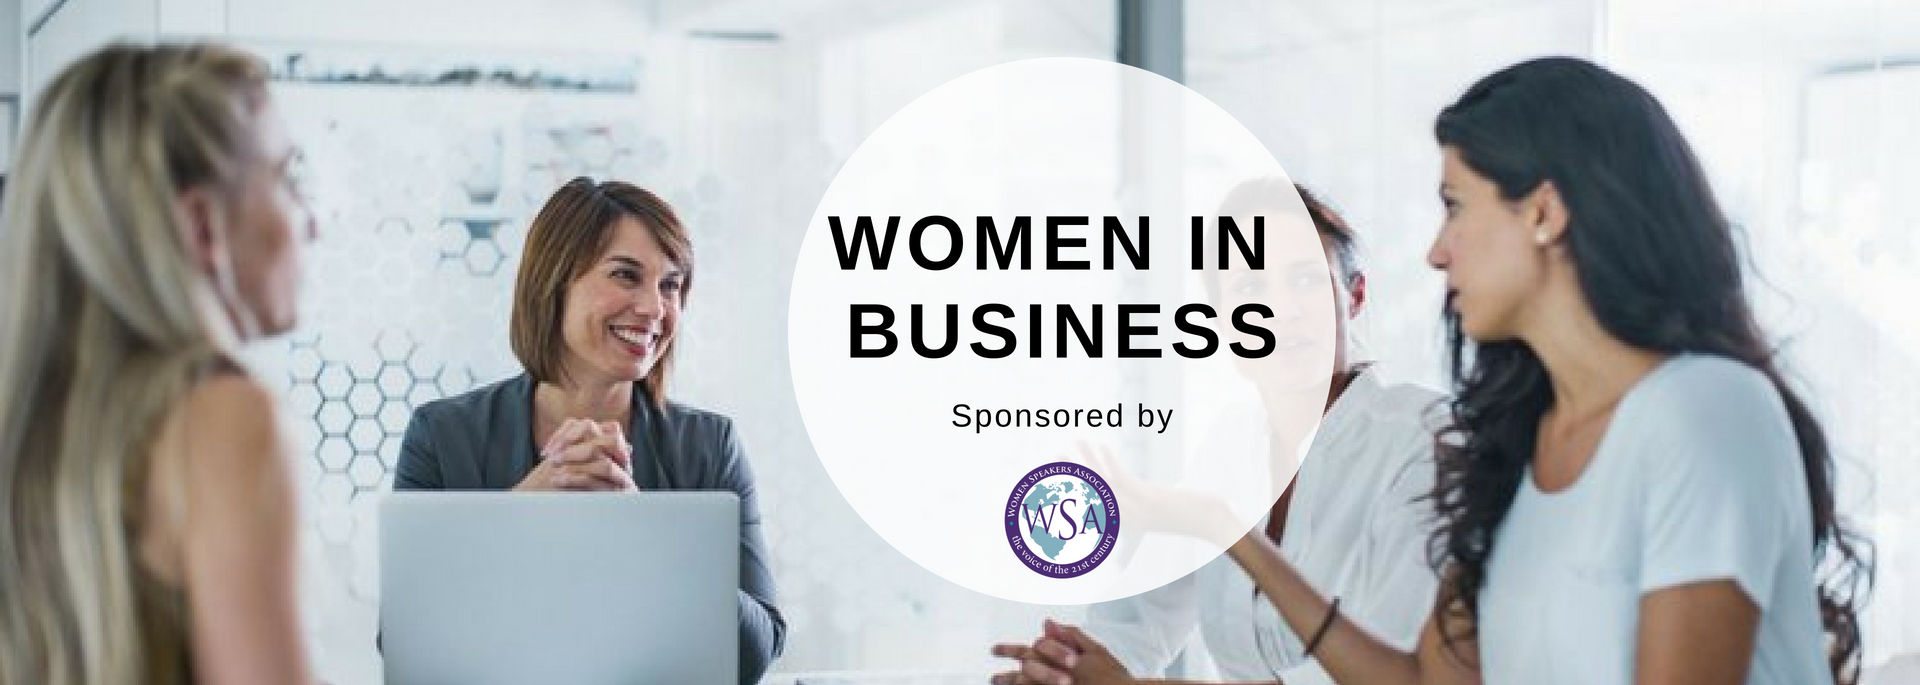 WOMEN IN BUSINESS category